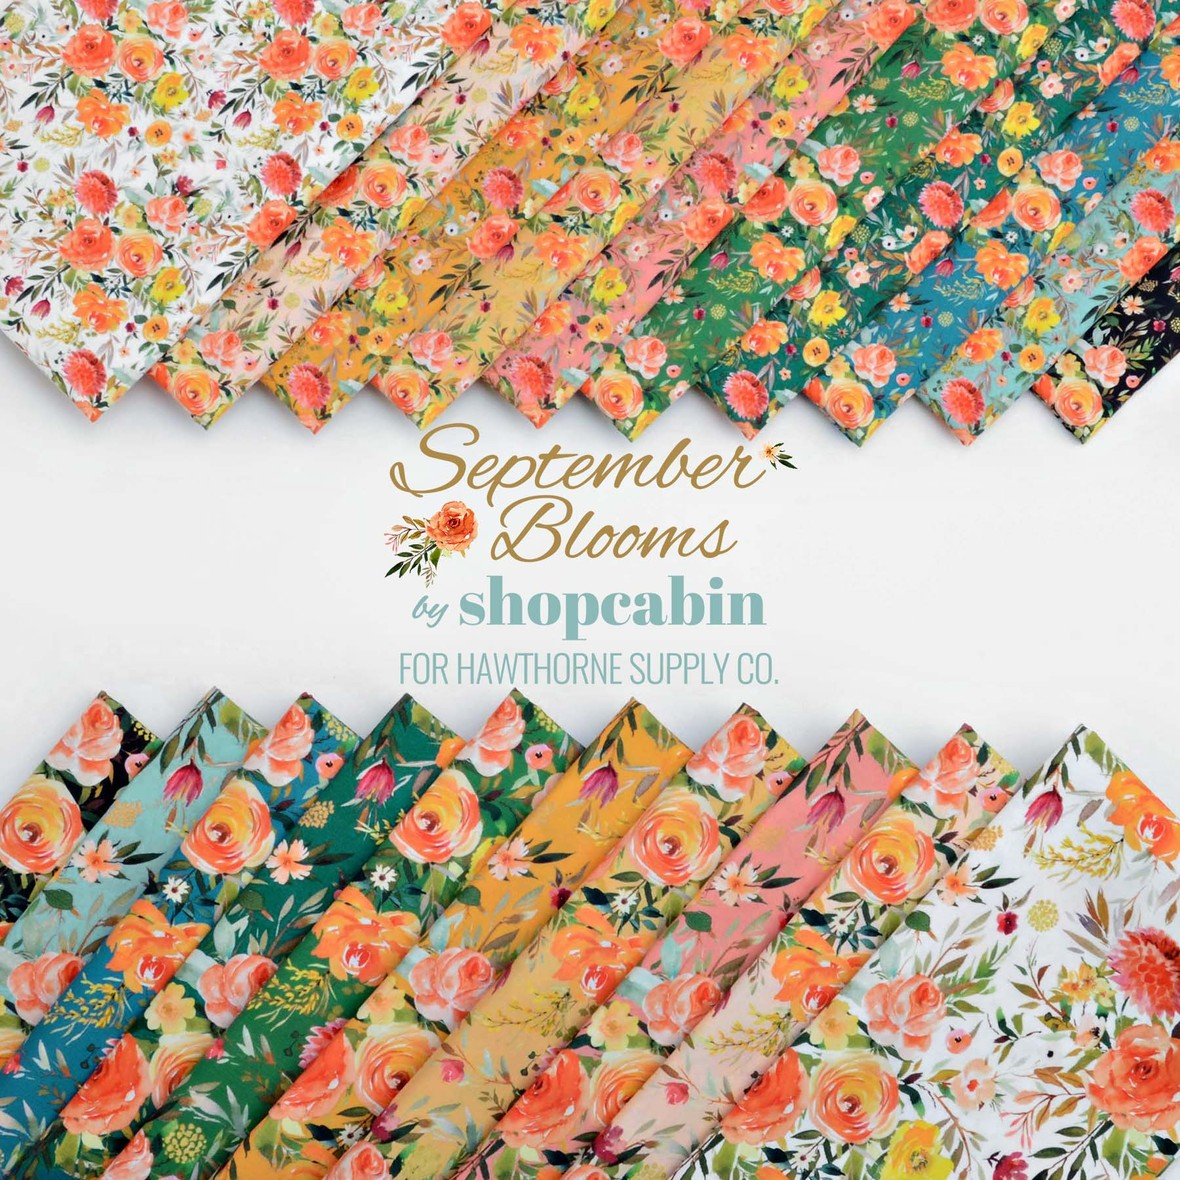 September Blooms Florals Poster Shopcabin Fabric for Hawthorne Supply Co